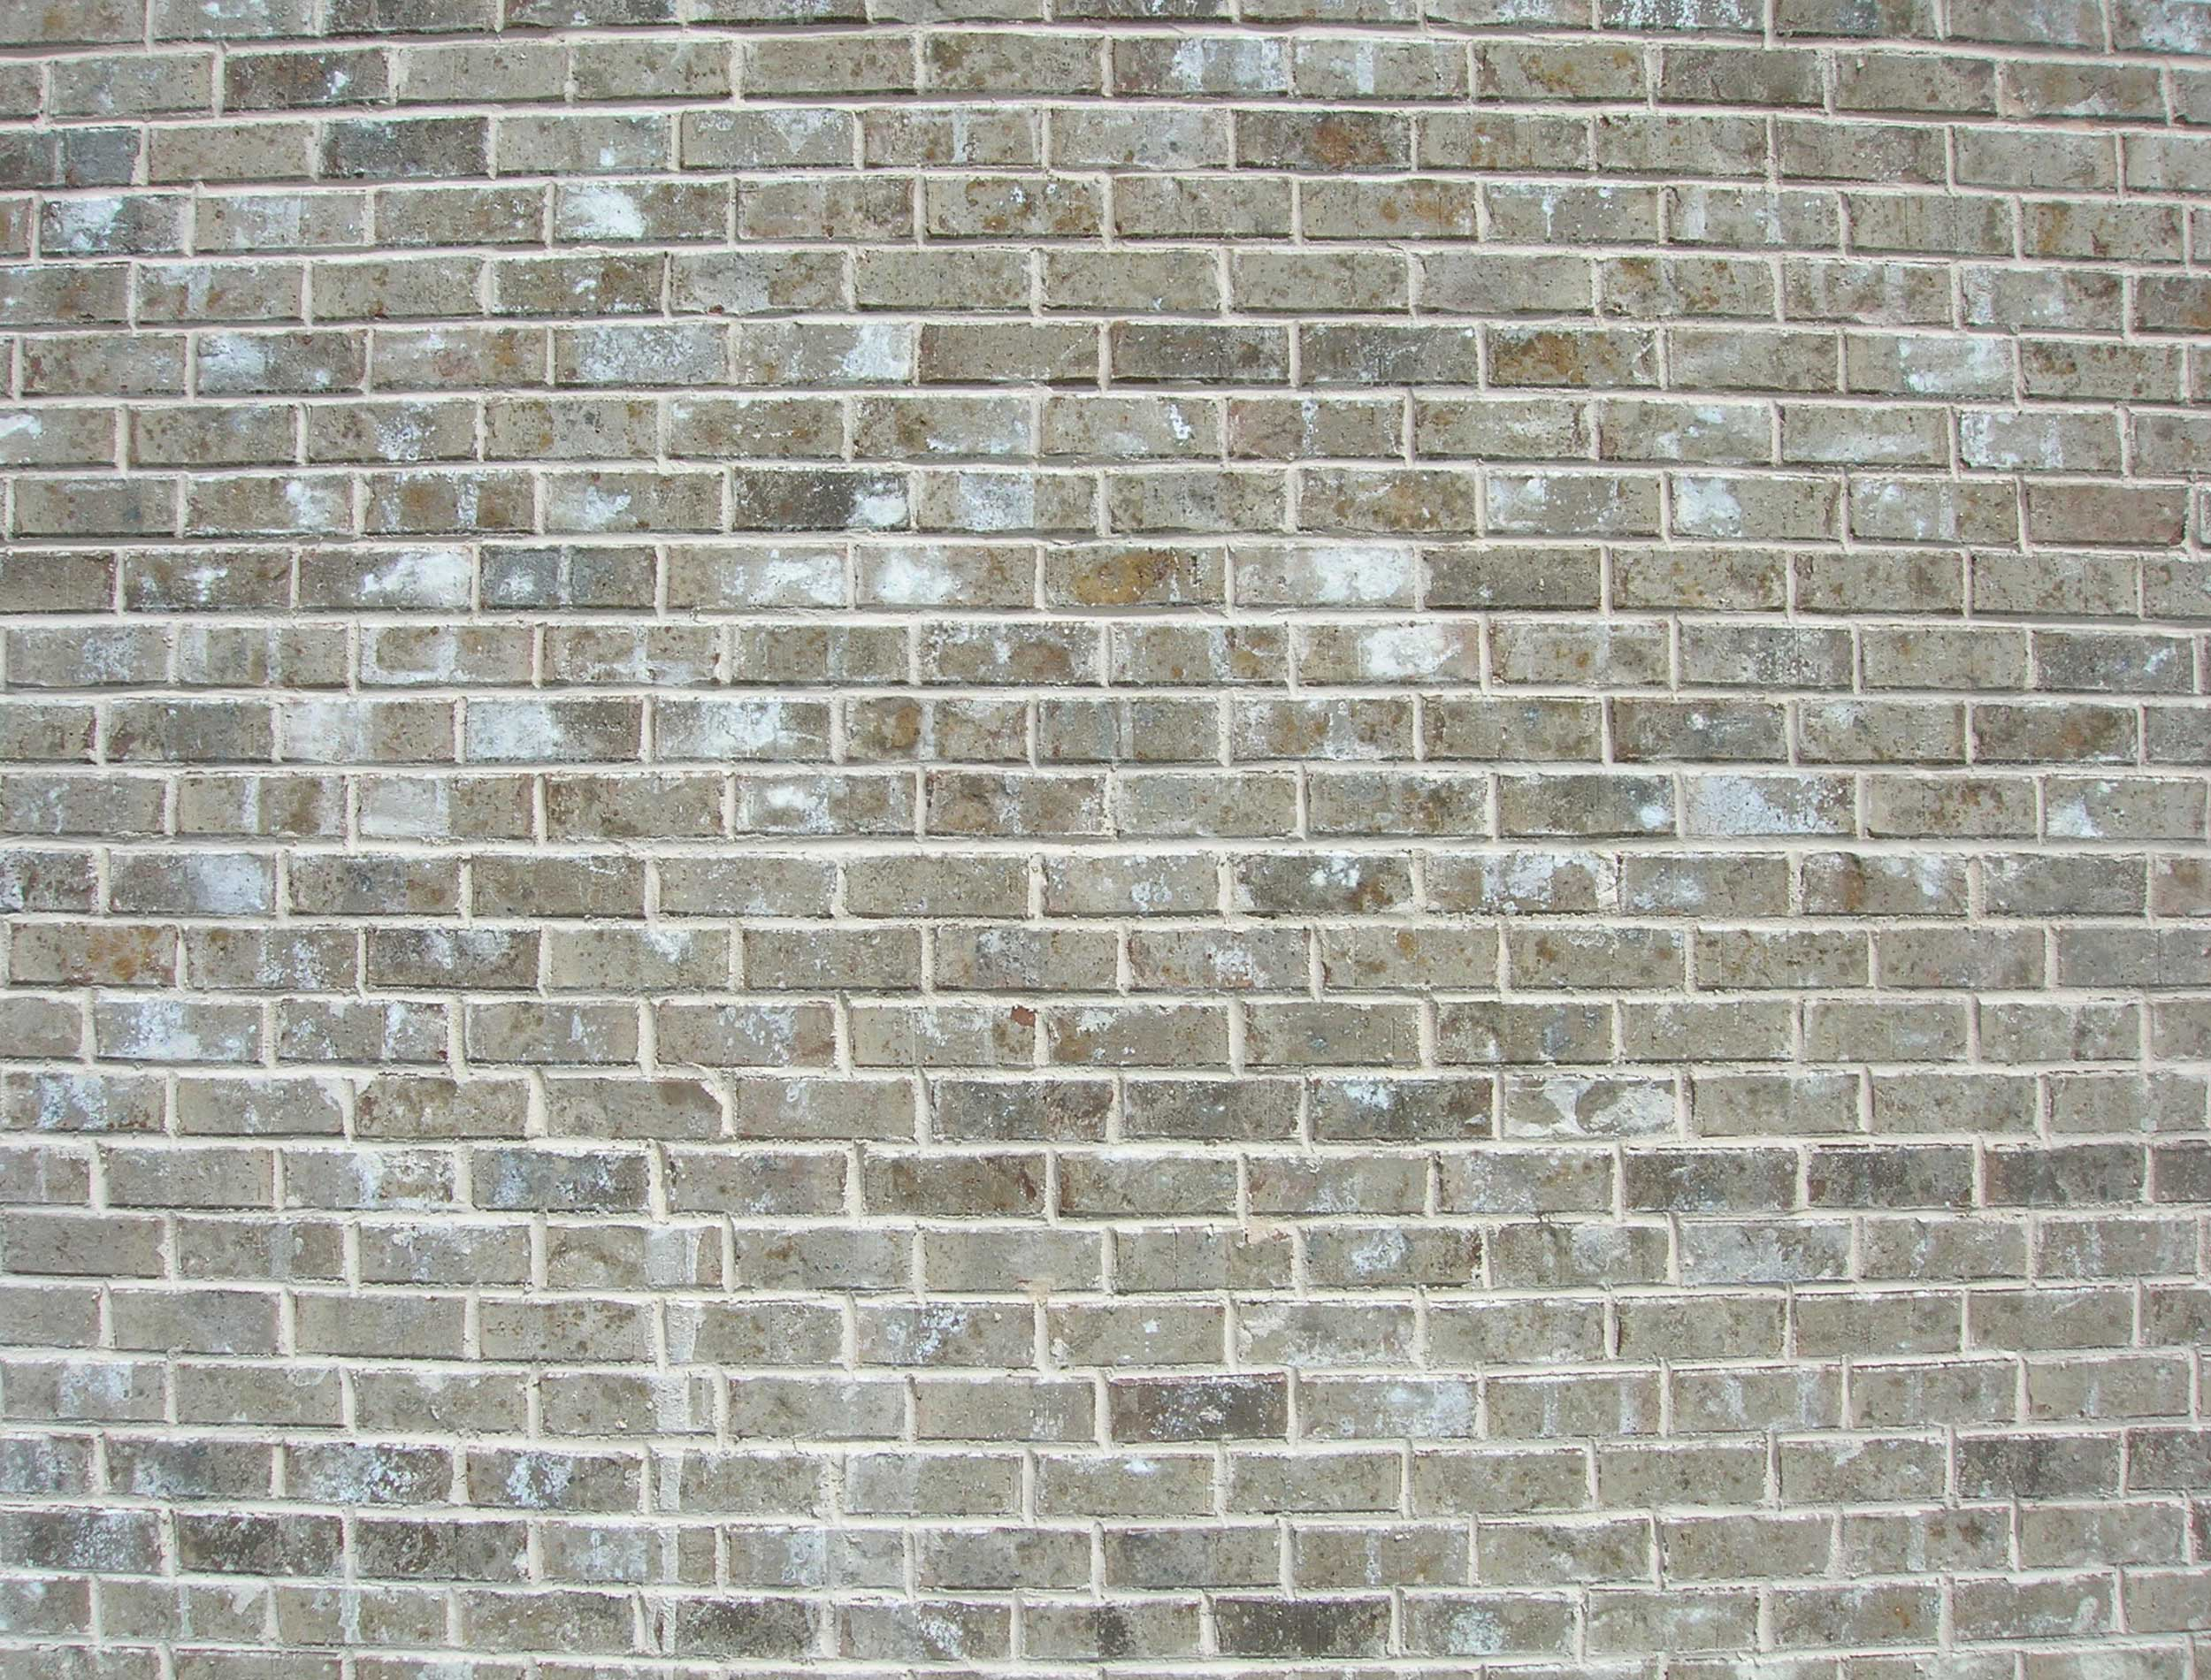 Grey Brick Homes http://packerbrick.com/products/face-brick/queen/queen-gray/jenkins-queen-size-gray-spanish-fort